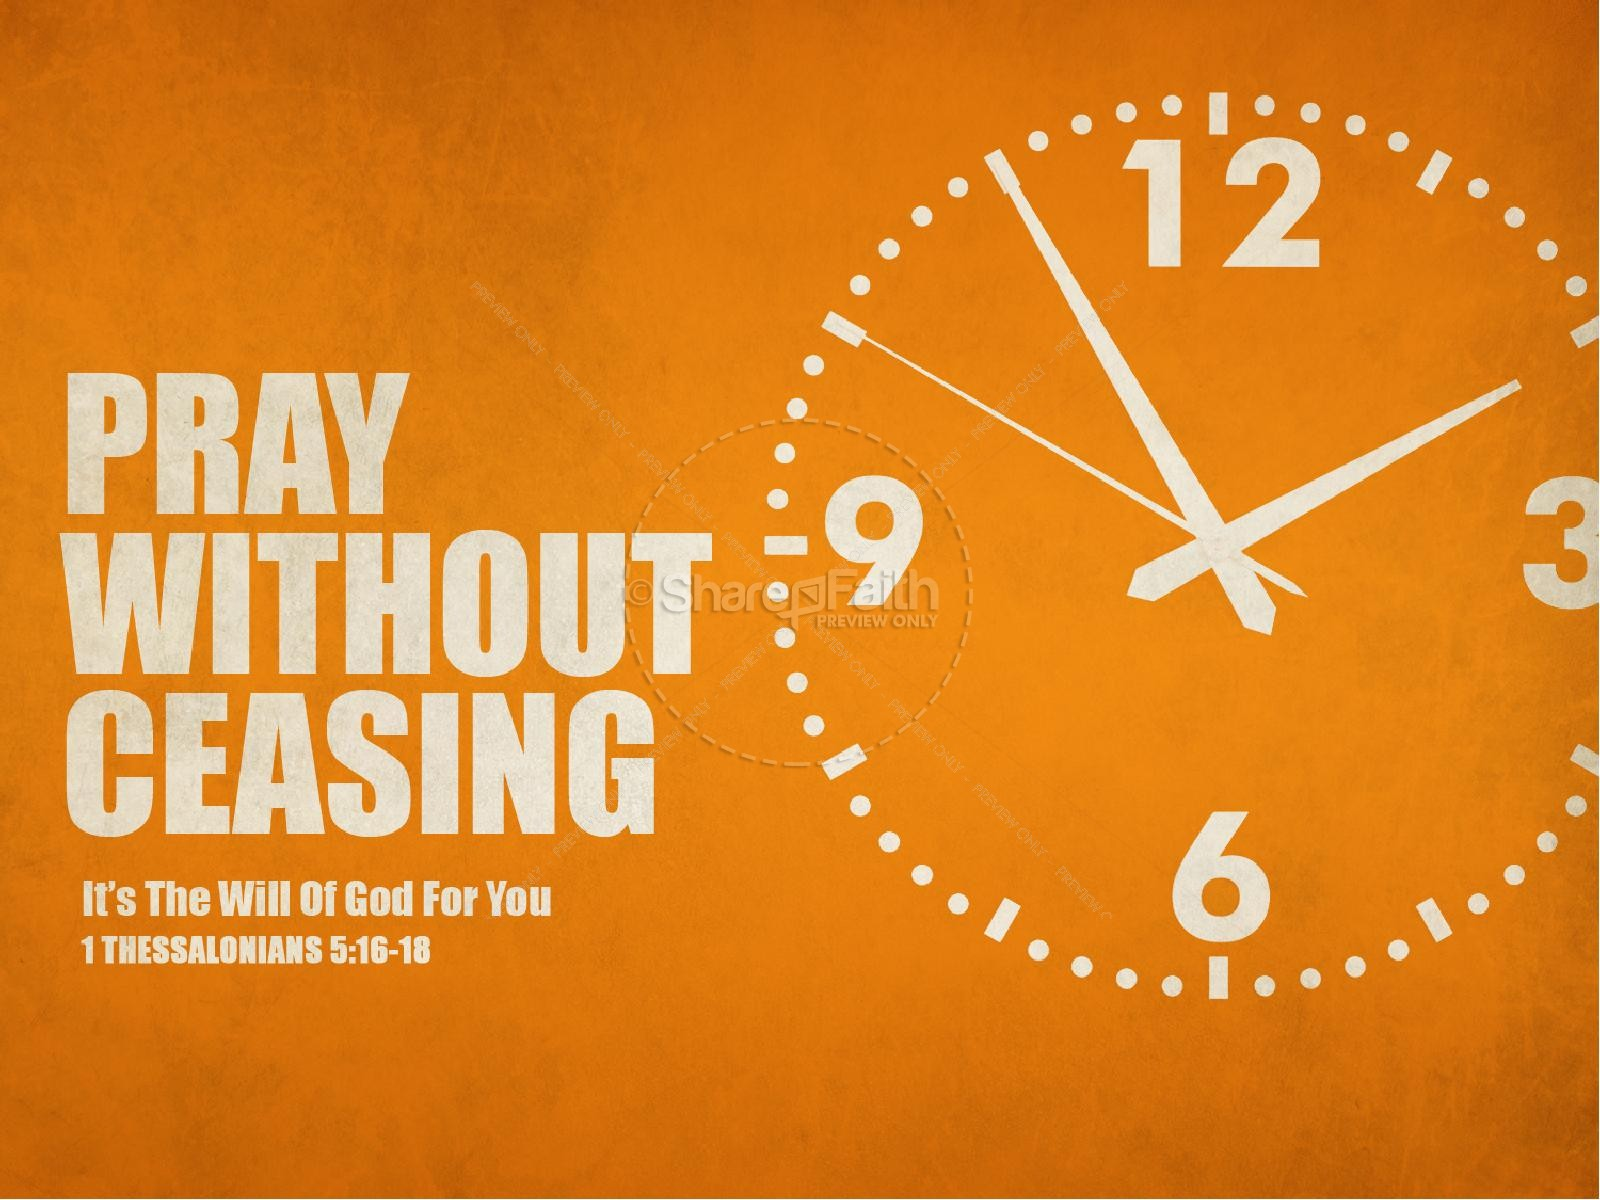 Pray Without Ceasing Sermon PowerPoint Template